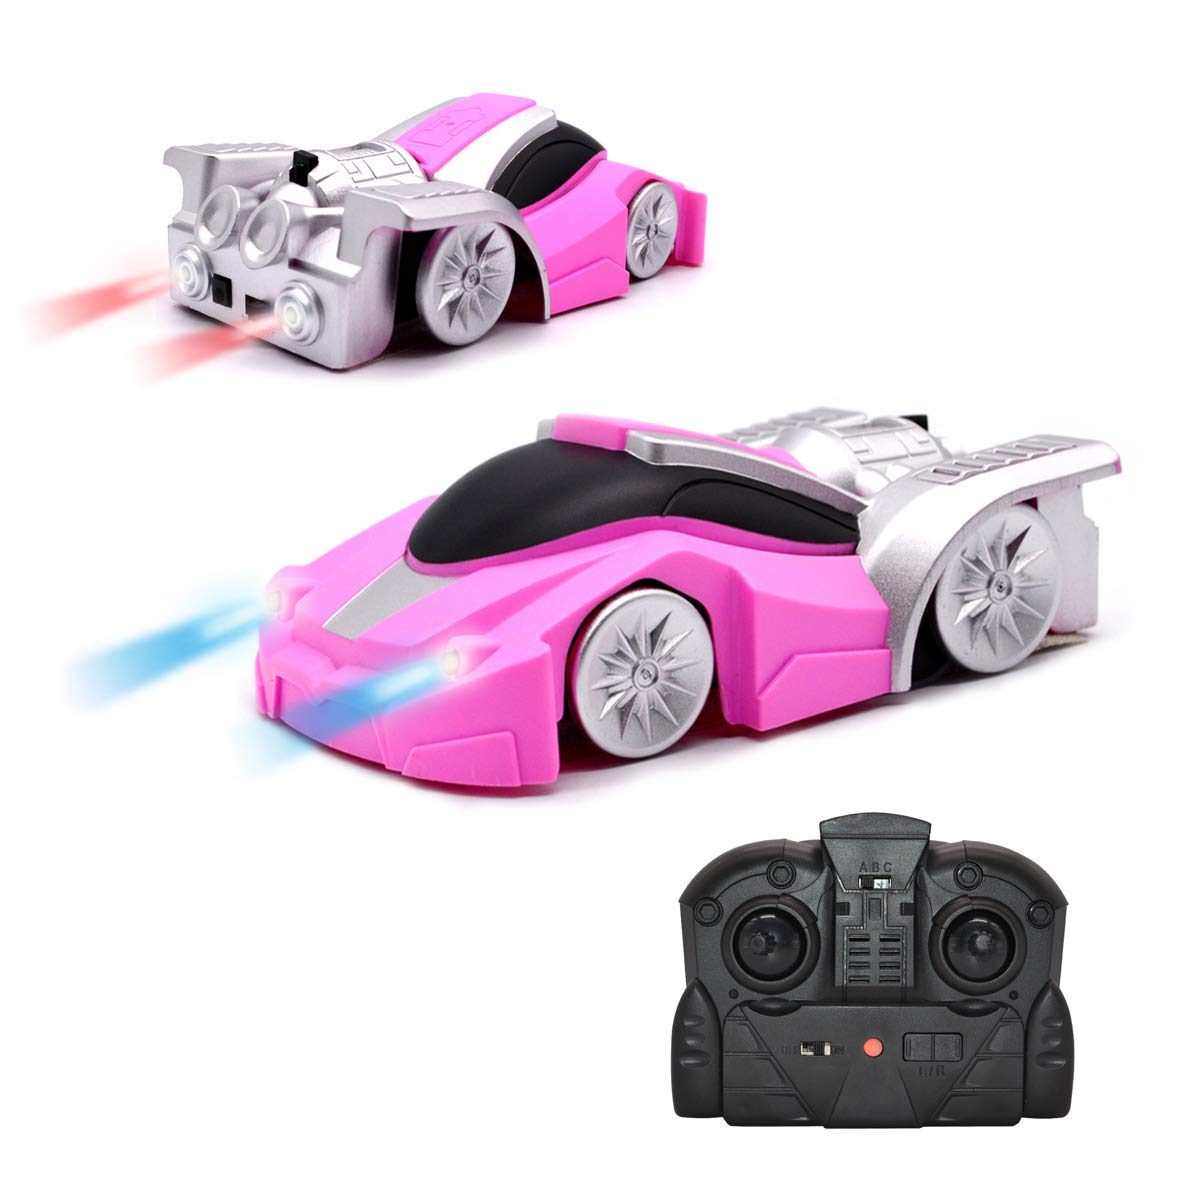 QUN FENG RC Cars Remote Control Wall Climbing Stunt Car Electric Gravity Sports Racing car Dual Mode Climber Toy Car for Girls Best Birthday Gift (Pink)